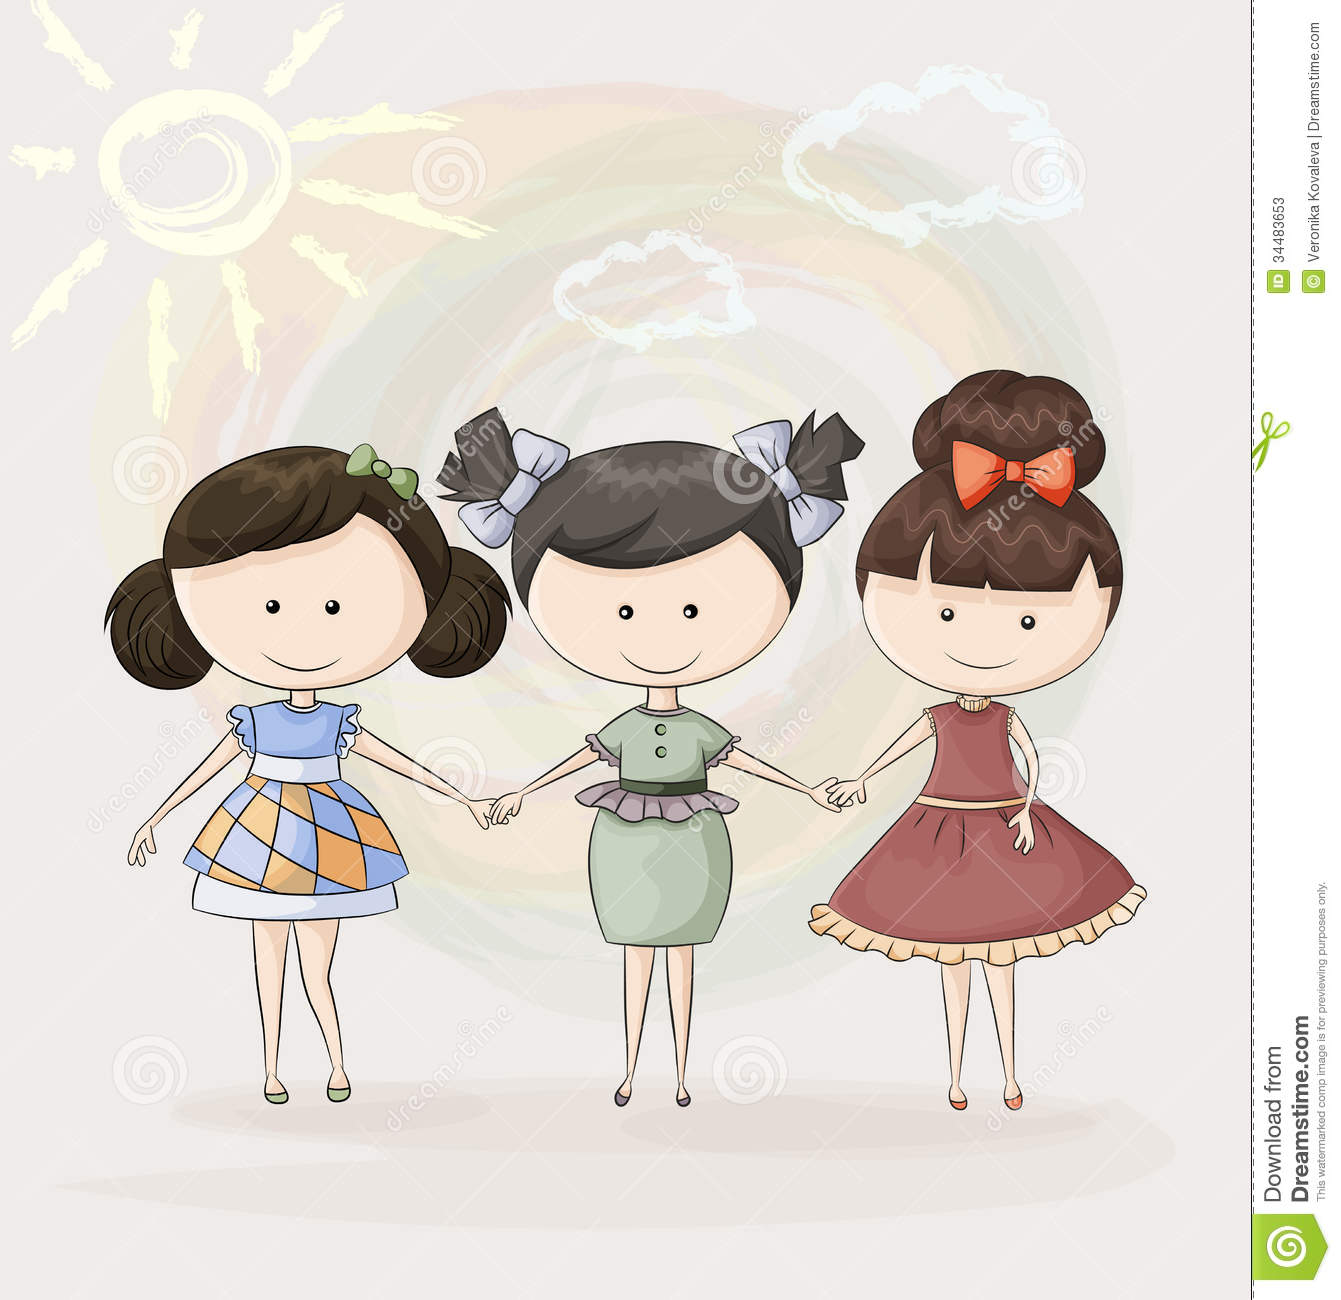 Best Friends Girls Images Stock Photos amp Vectors